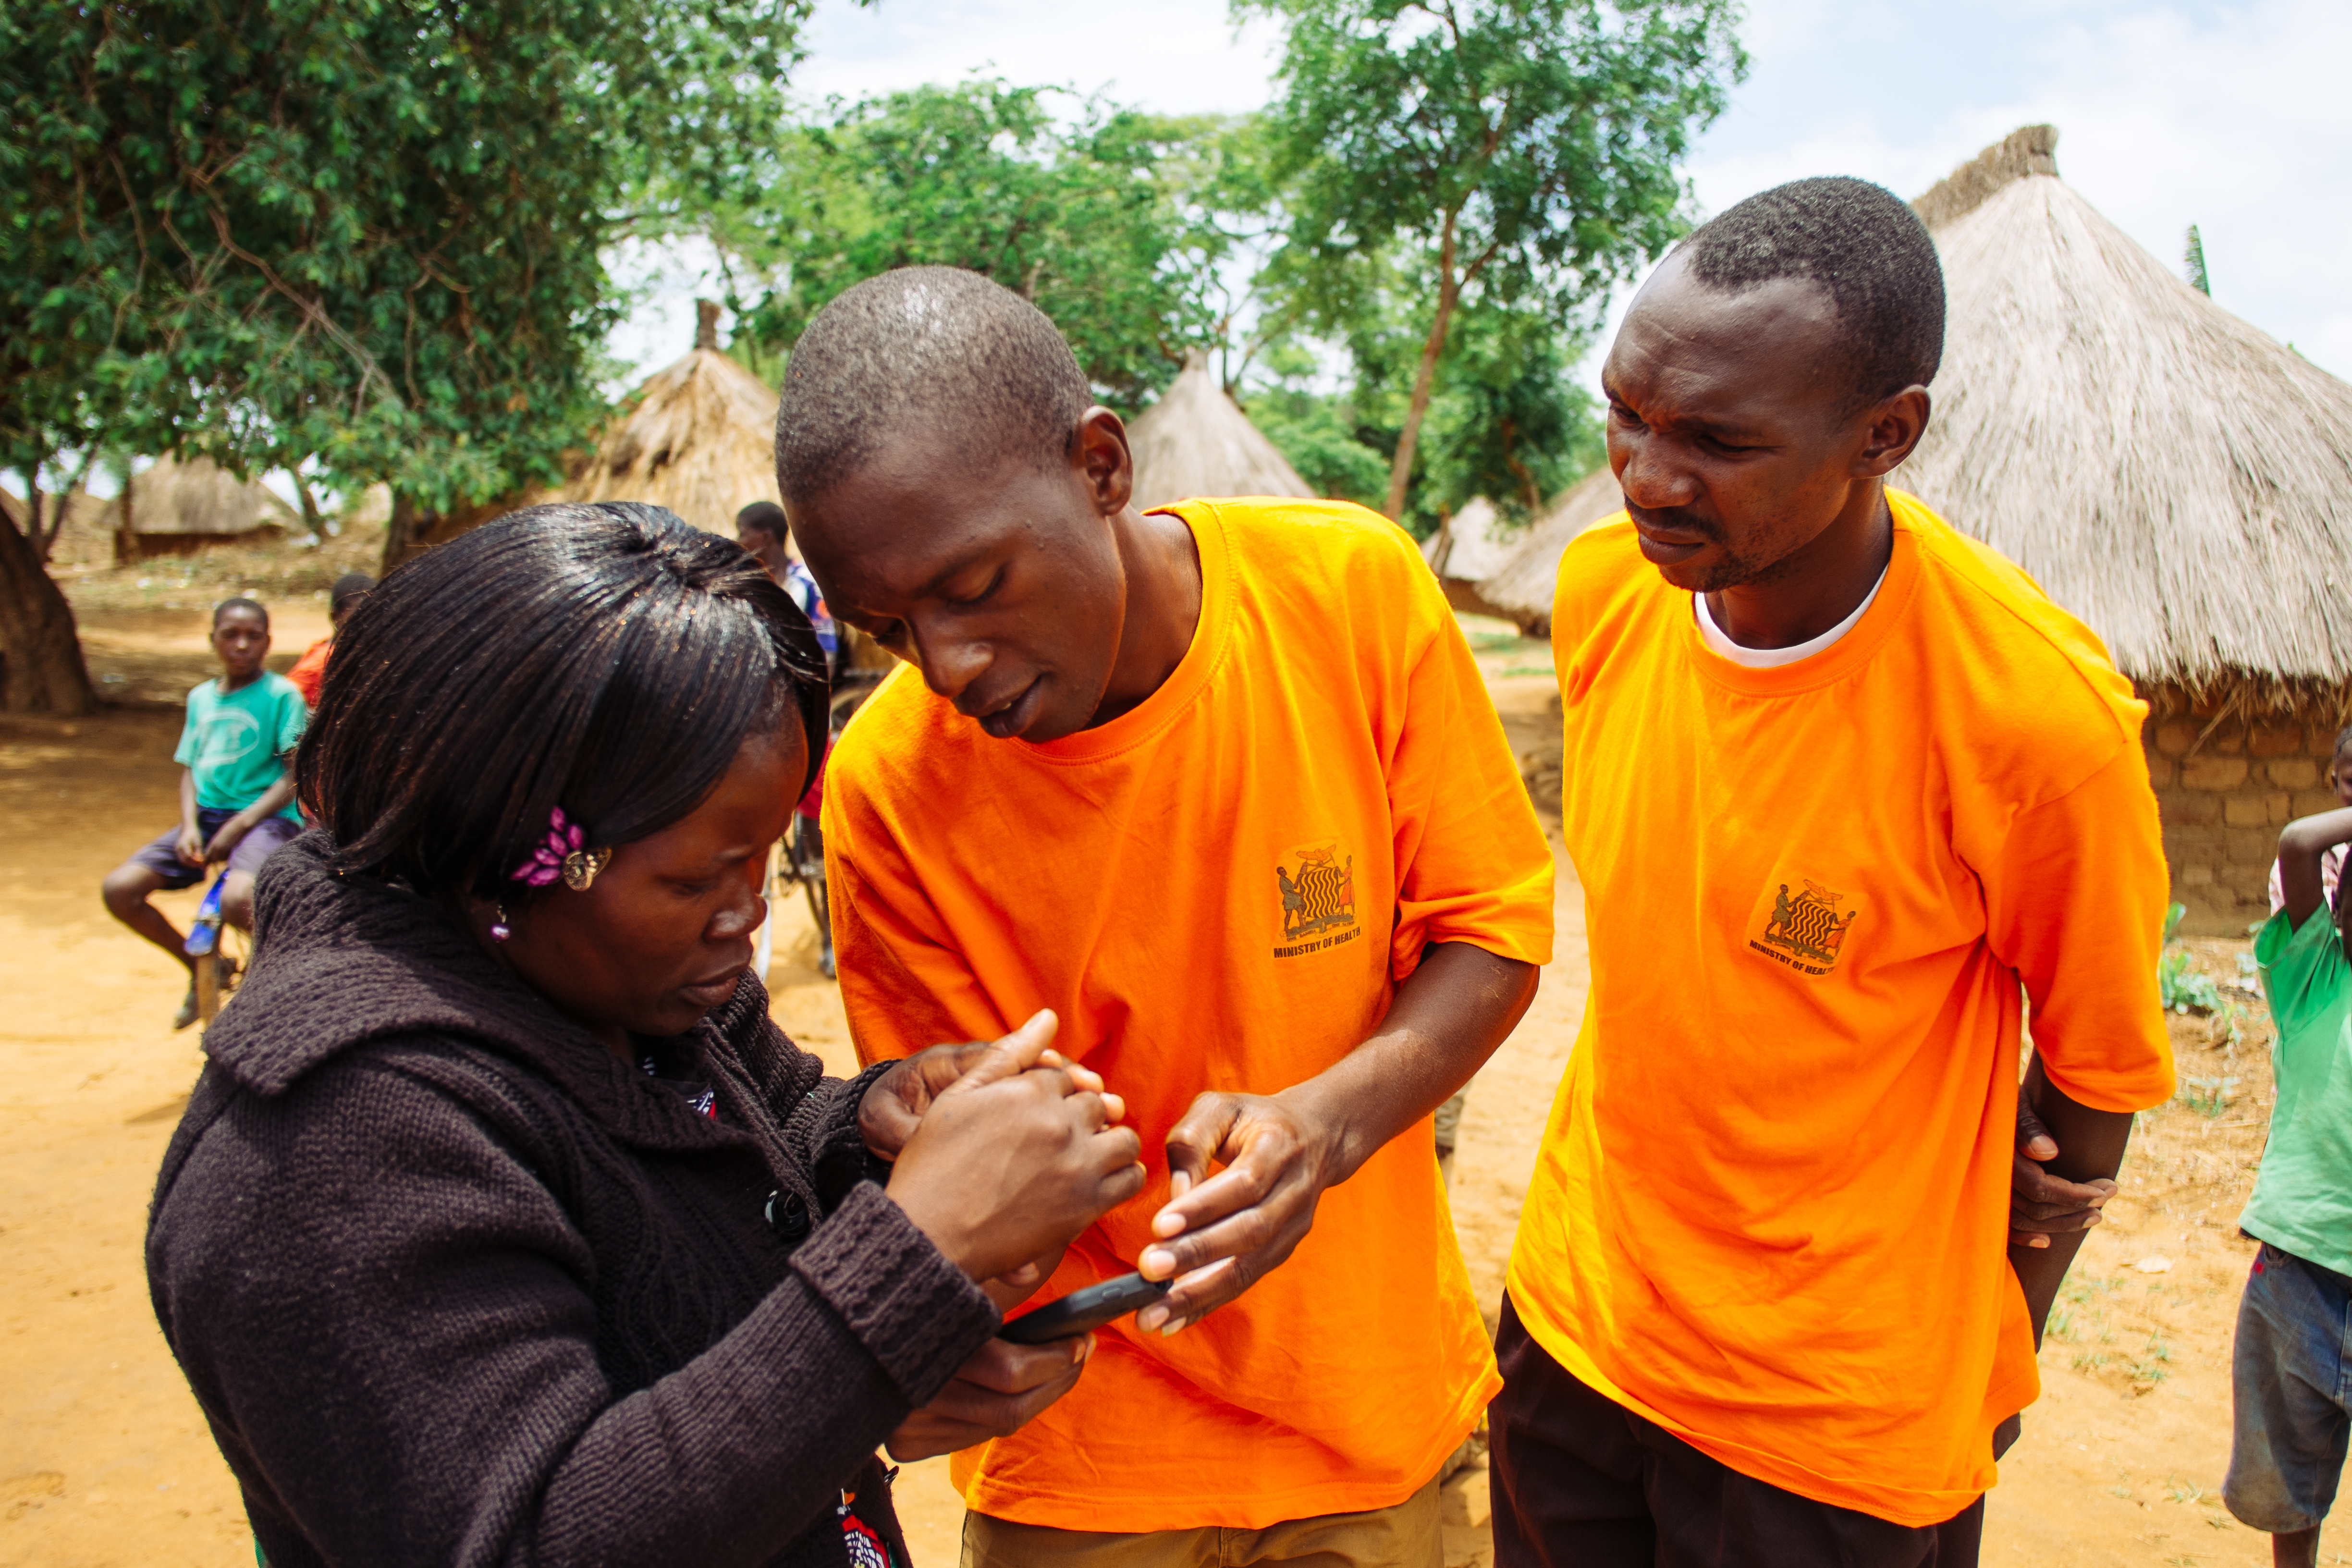 Ephraim Sikalundu (center), Data collector, and Vincent Munsaka (right), Community health worker, stand with Rachel Mokosha (left), District Malaria Focal Person, looking mobile phone data.